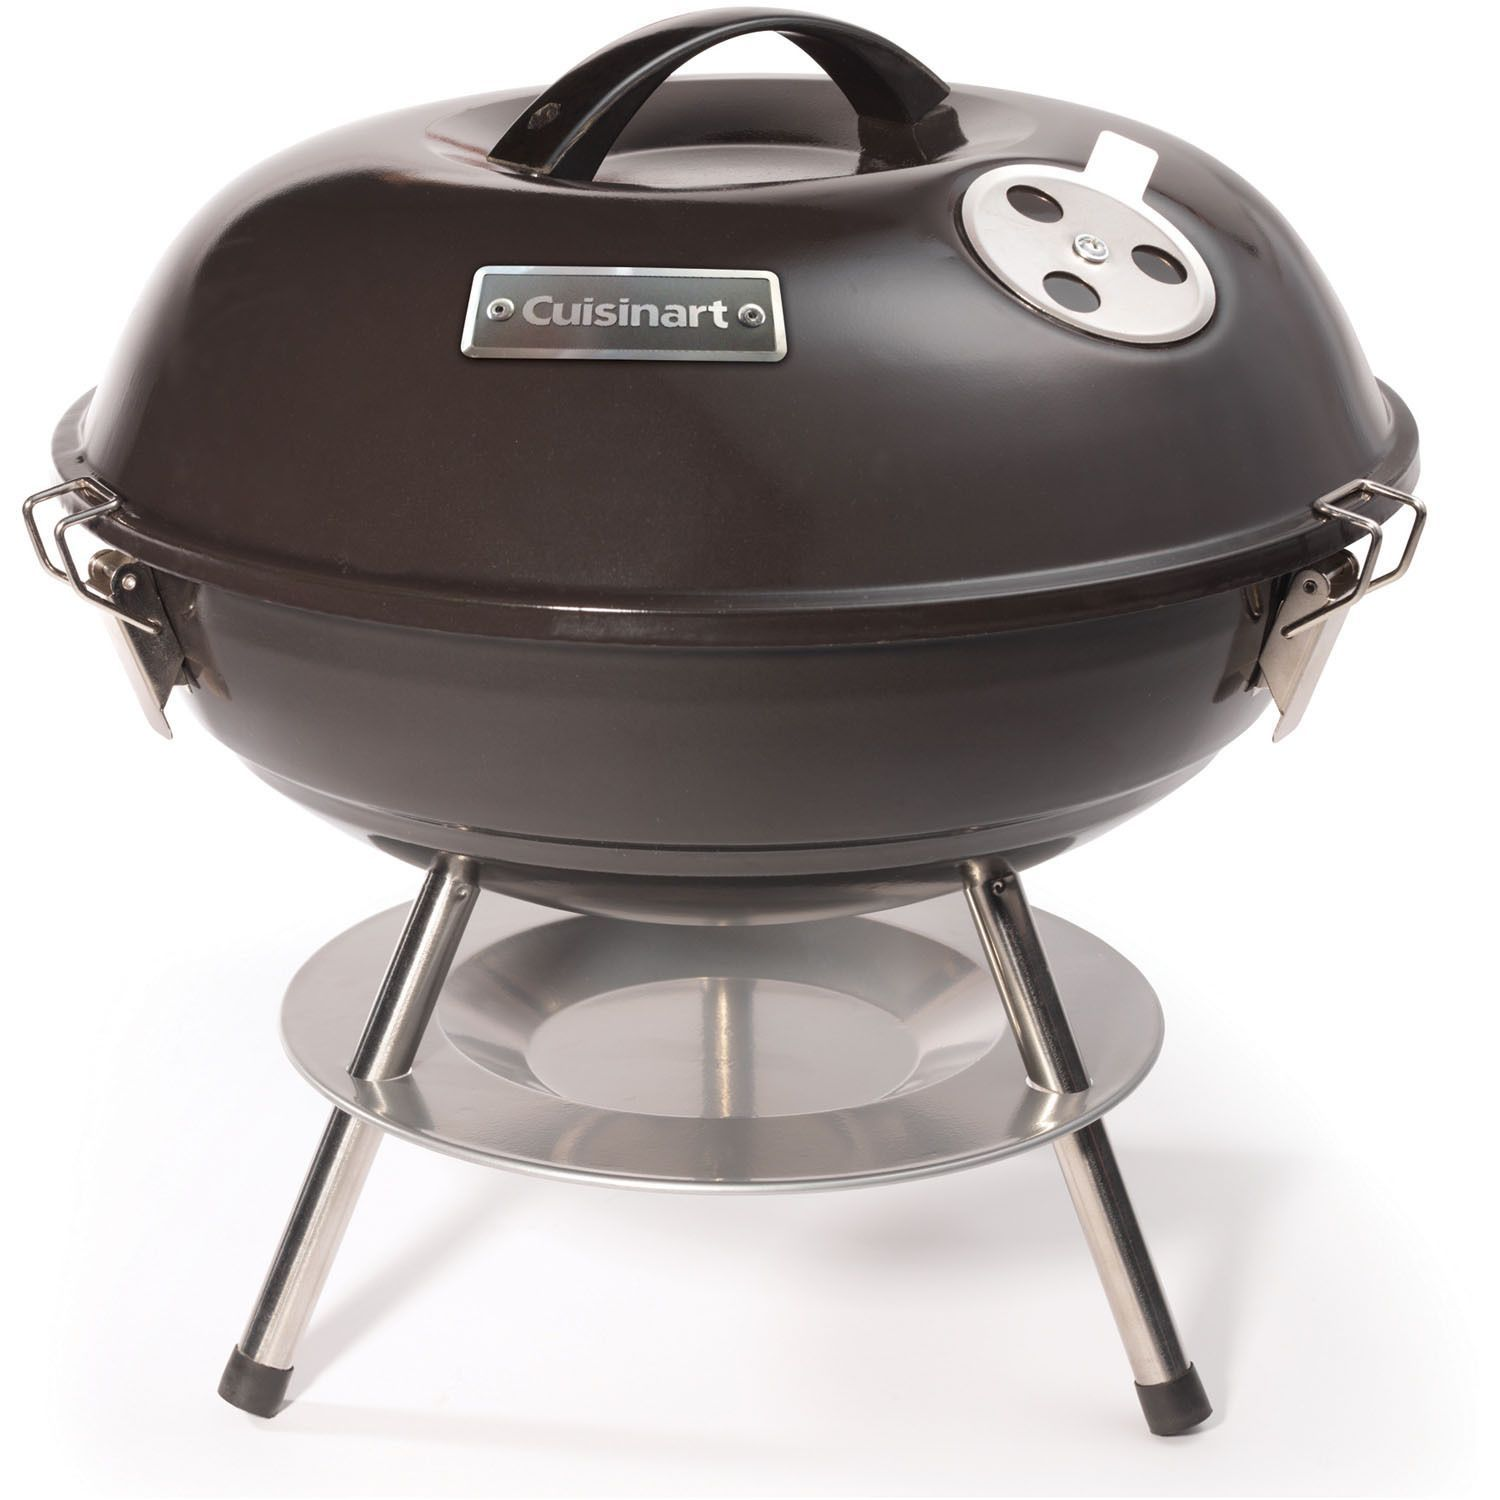 Cuisinart Black 14 Inch Portable Charcoal Grill Black Charcoal Grill Portable Charcoal Grill Grilling